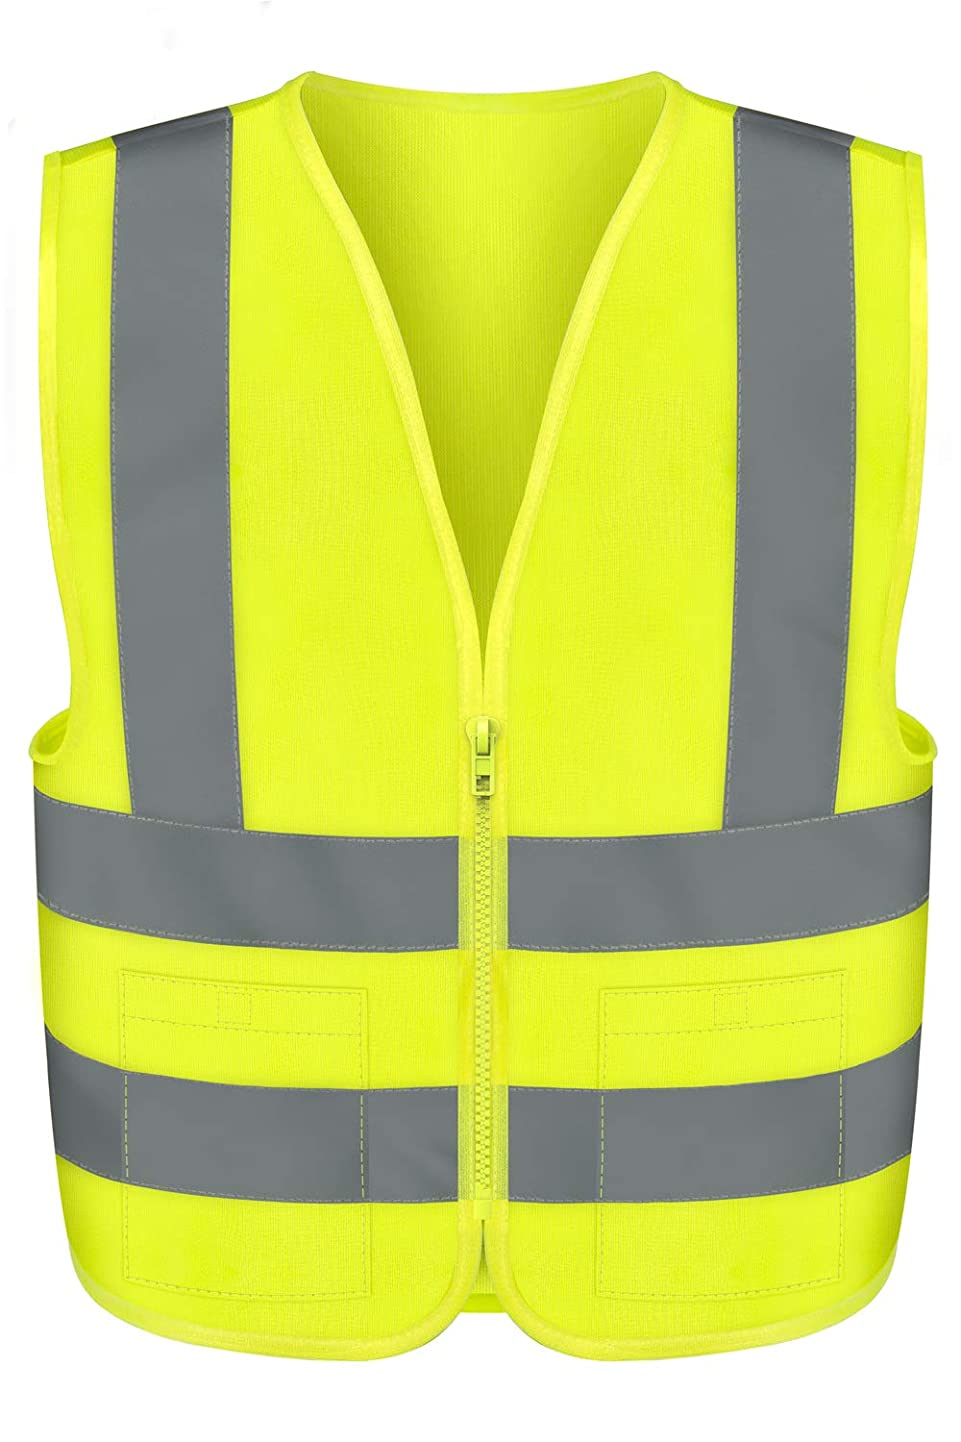 Neiko 53964A High Visibility SAFETY Vest with 2 Pockets, XX-Large, Neon Yellow afgntmxkpwm7